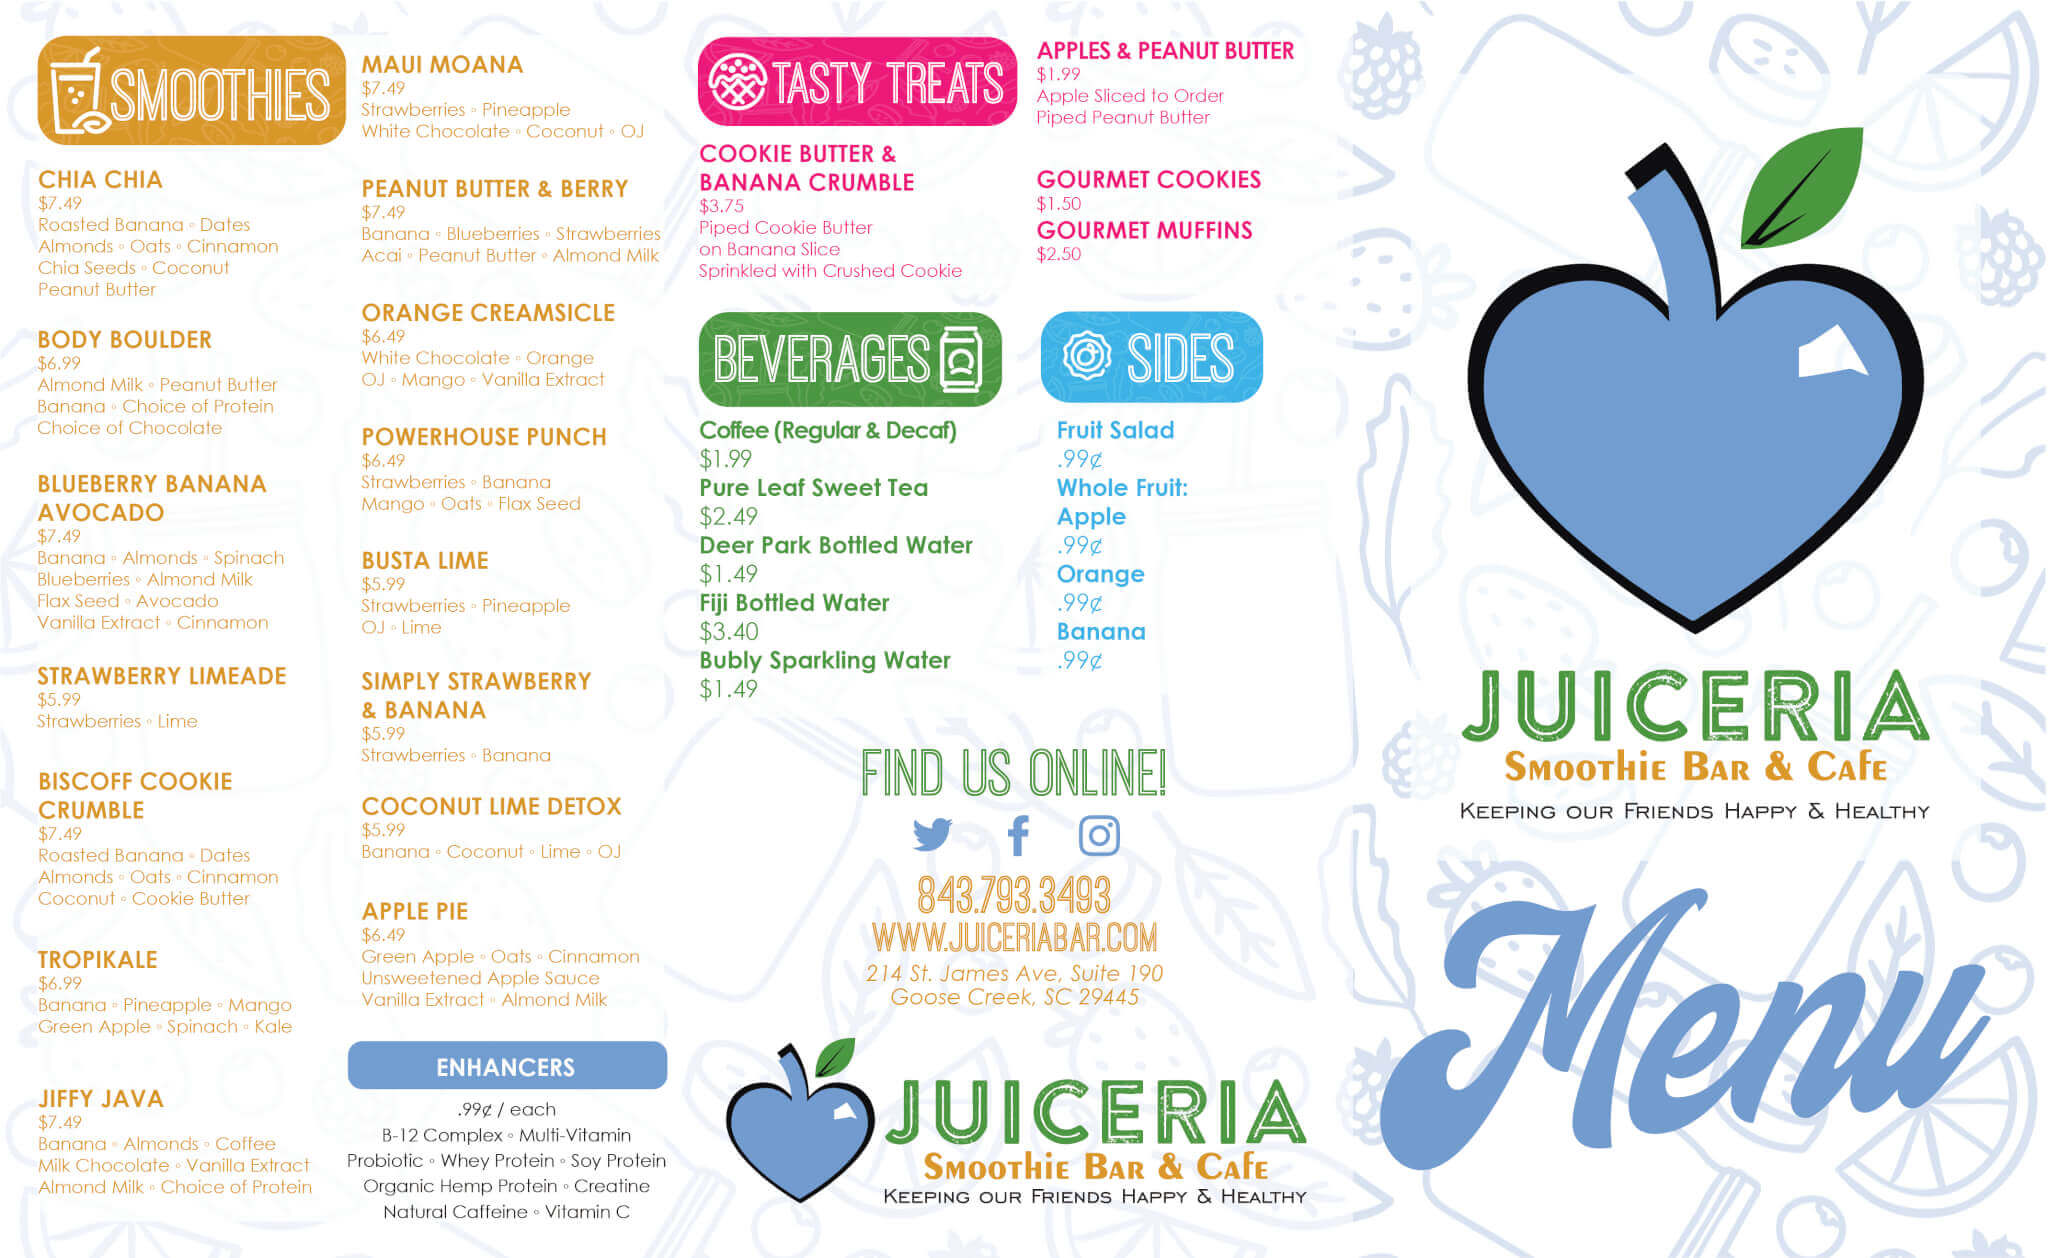 juiceria website design